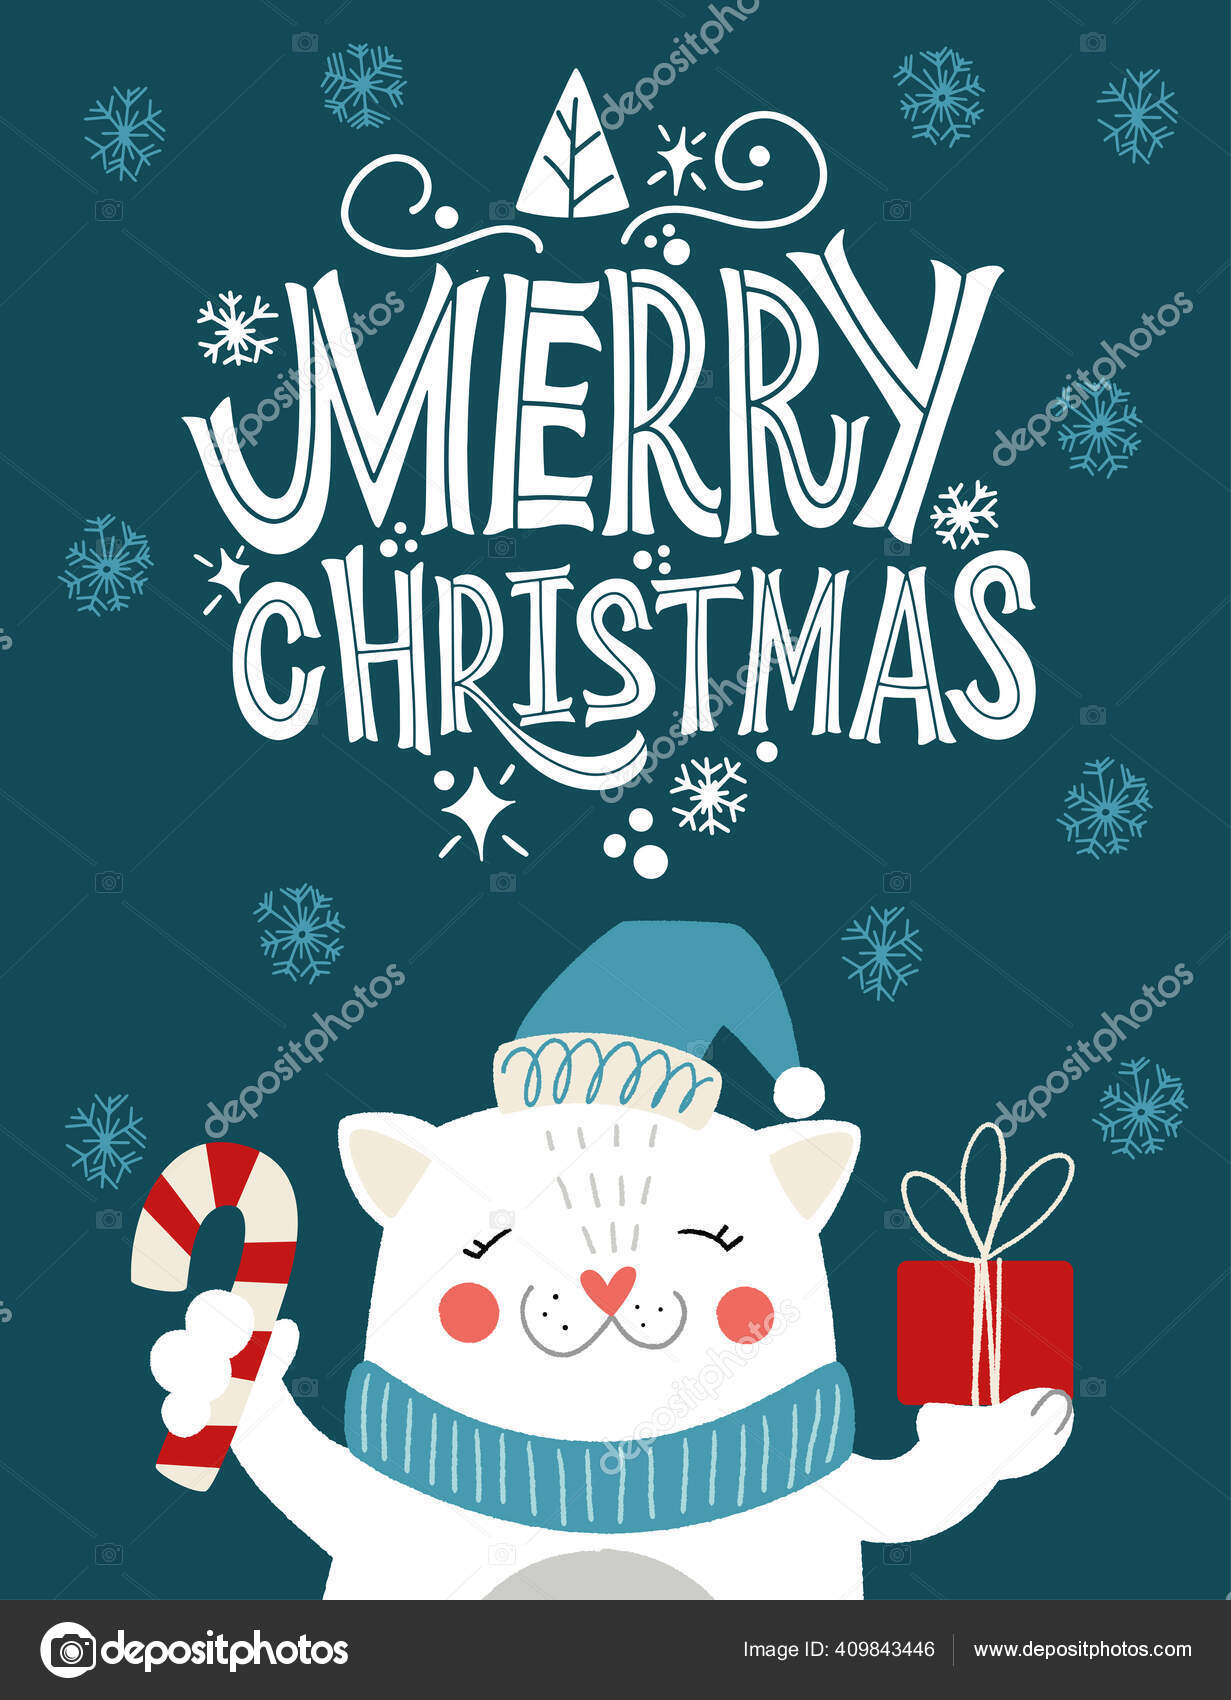 Cat Christmas Cards 2021